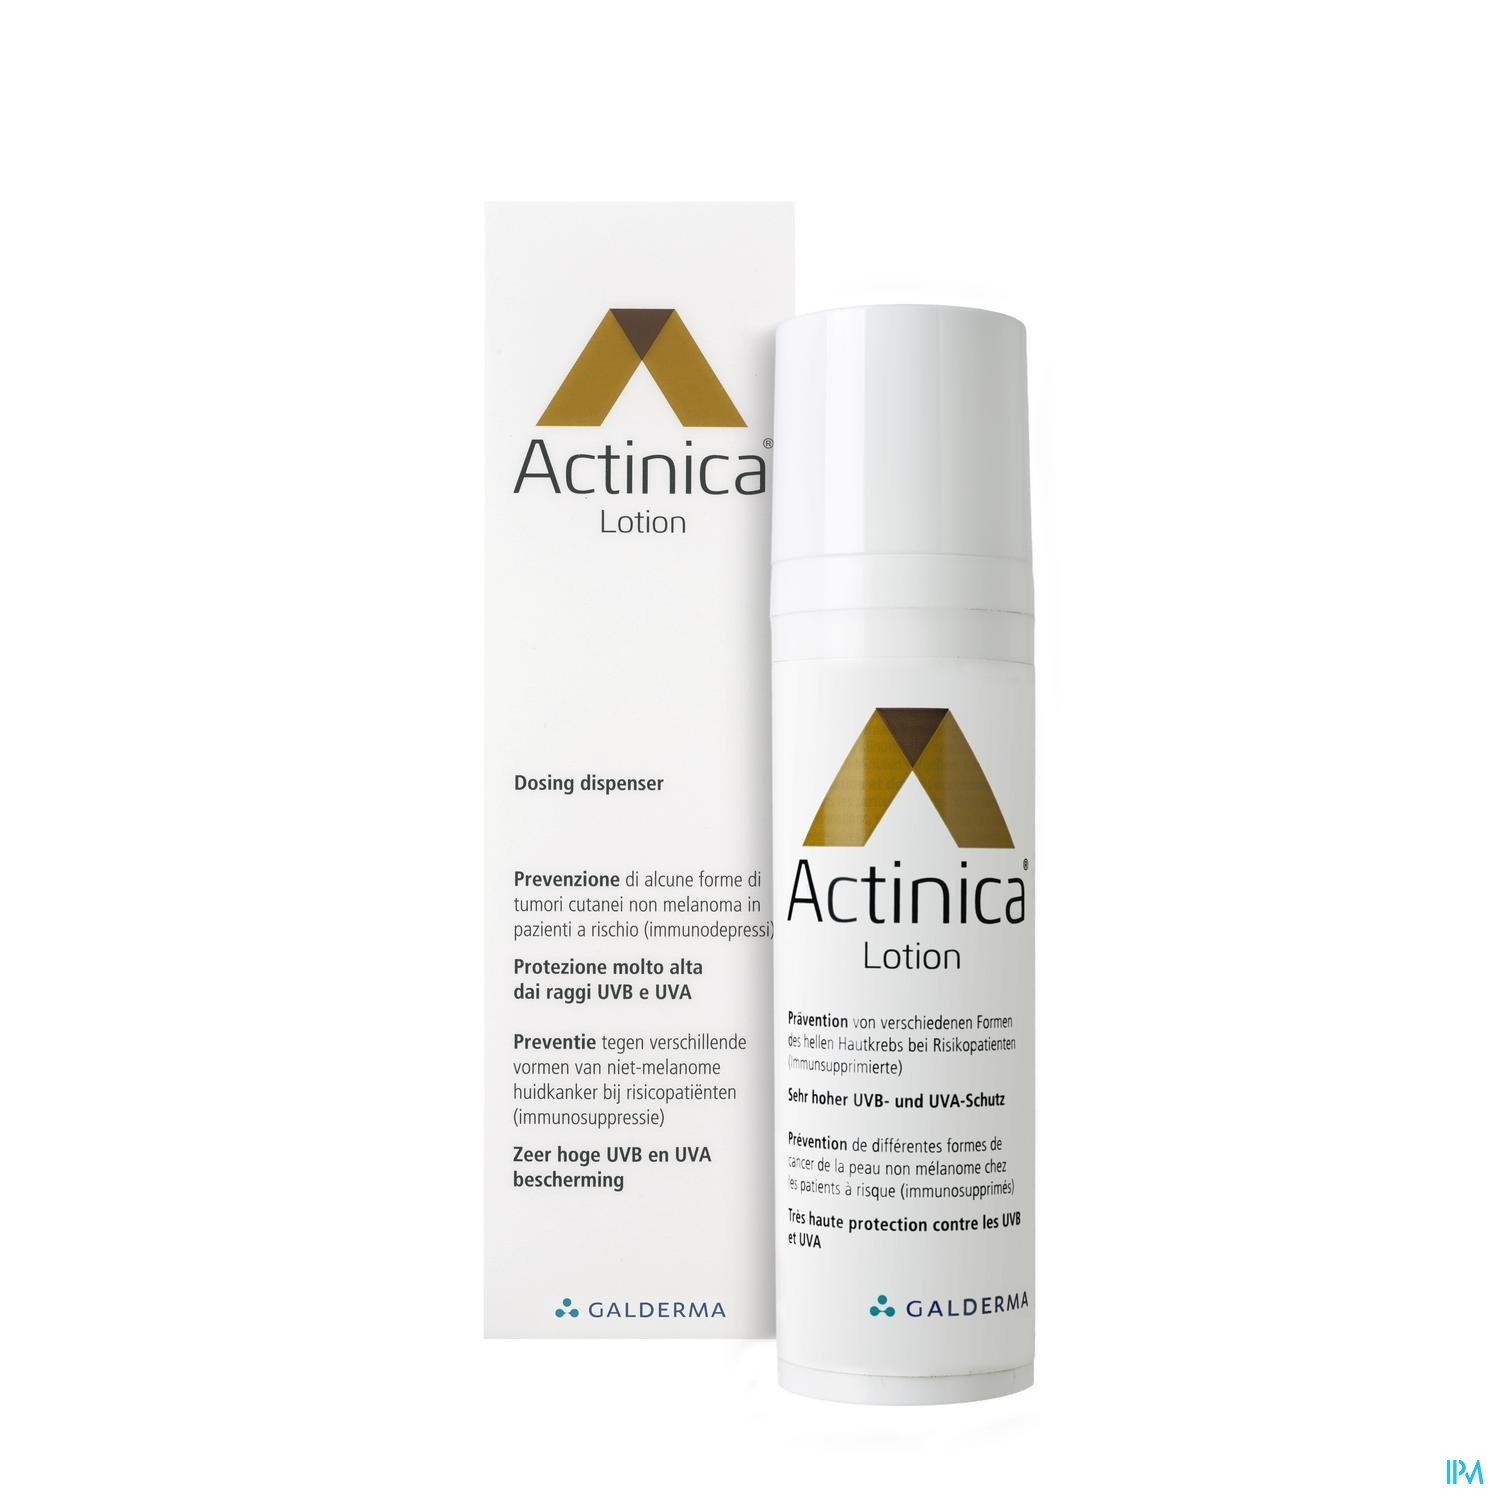 Image of Actinica Lotion 80g